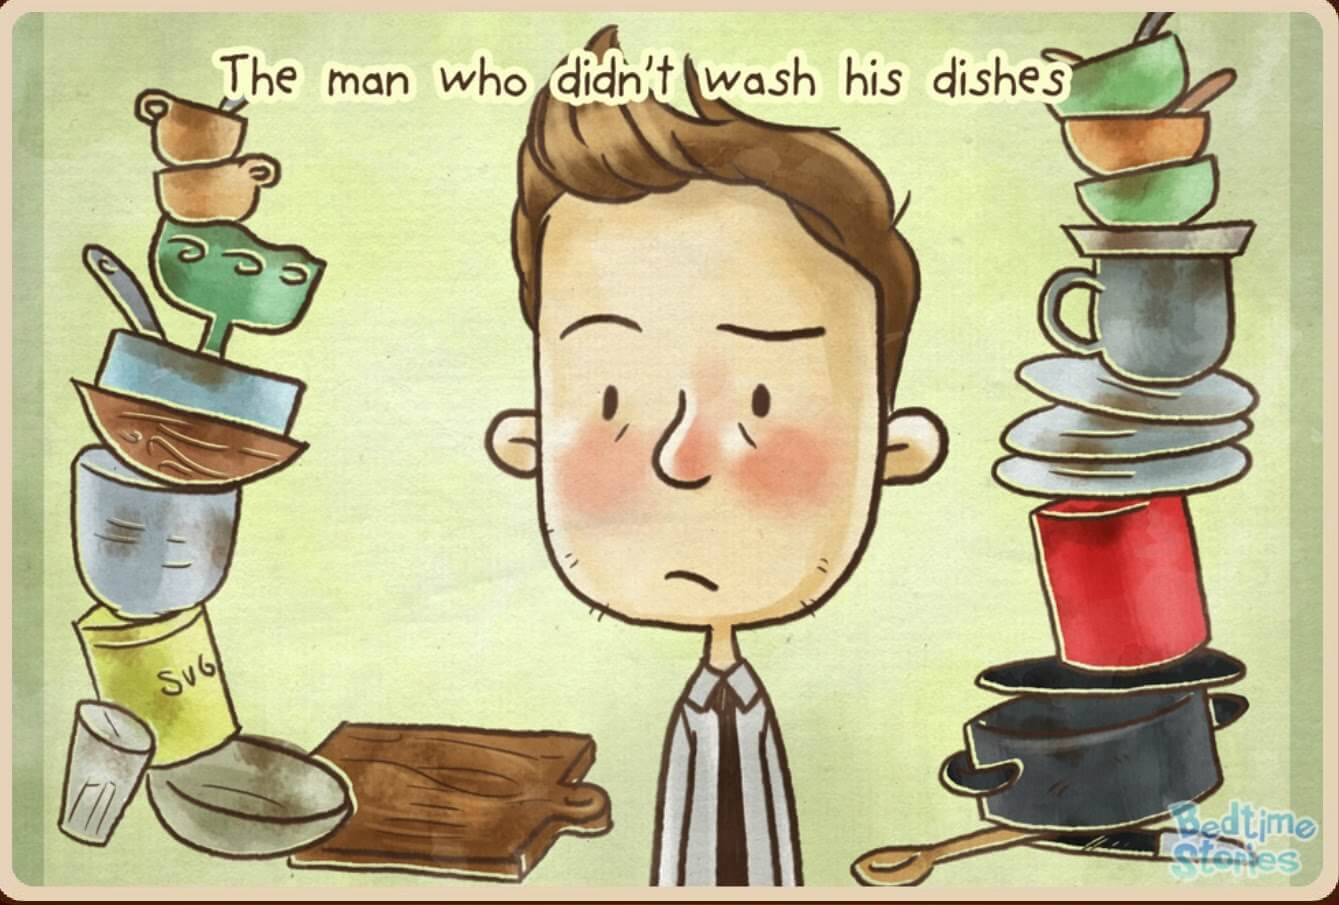 The Man who didn't wash his dishes